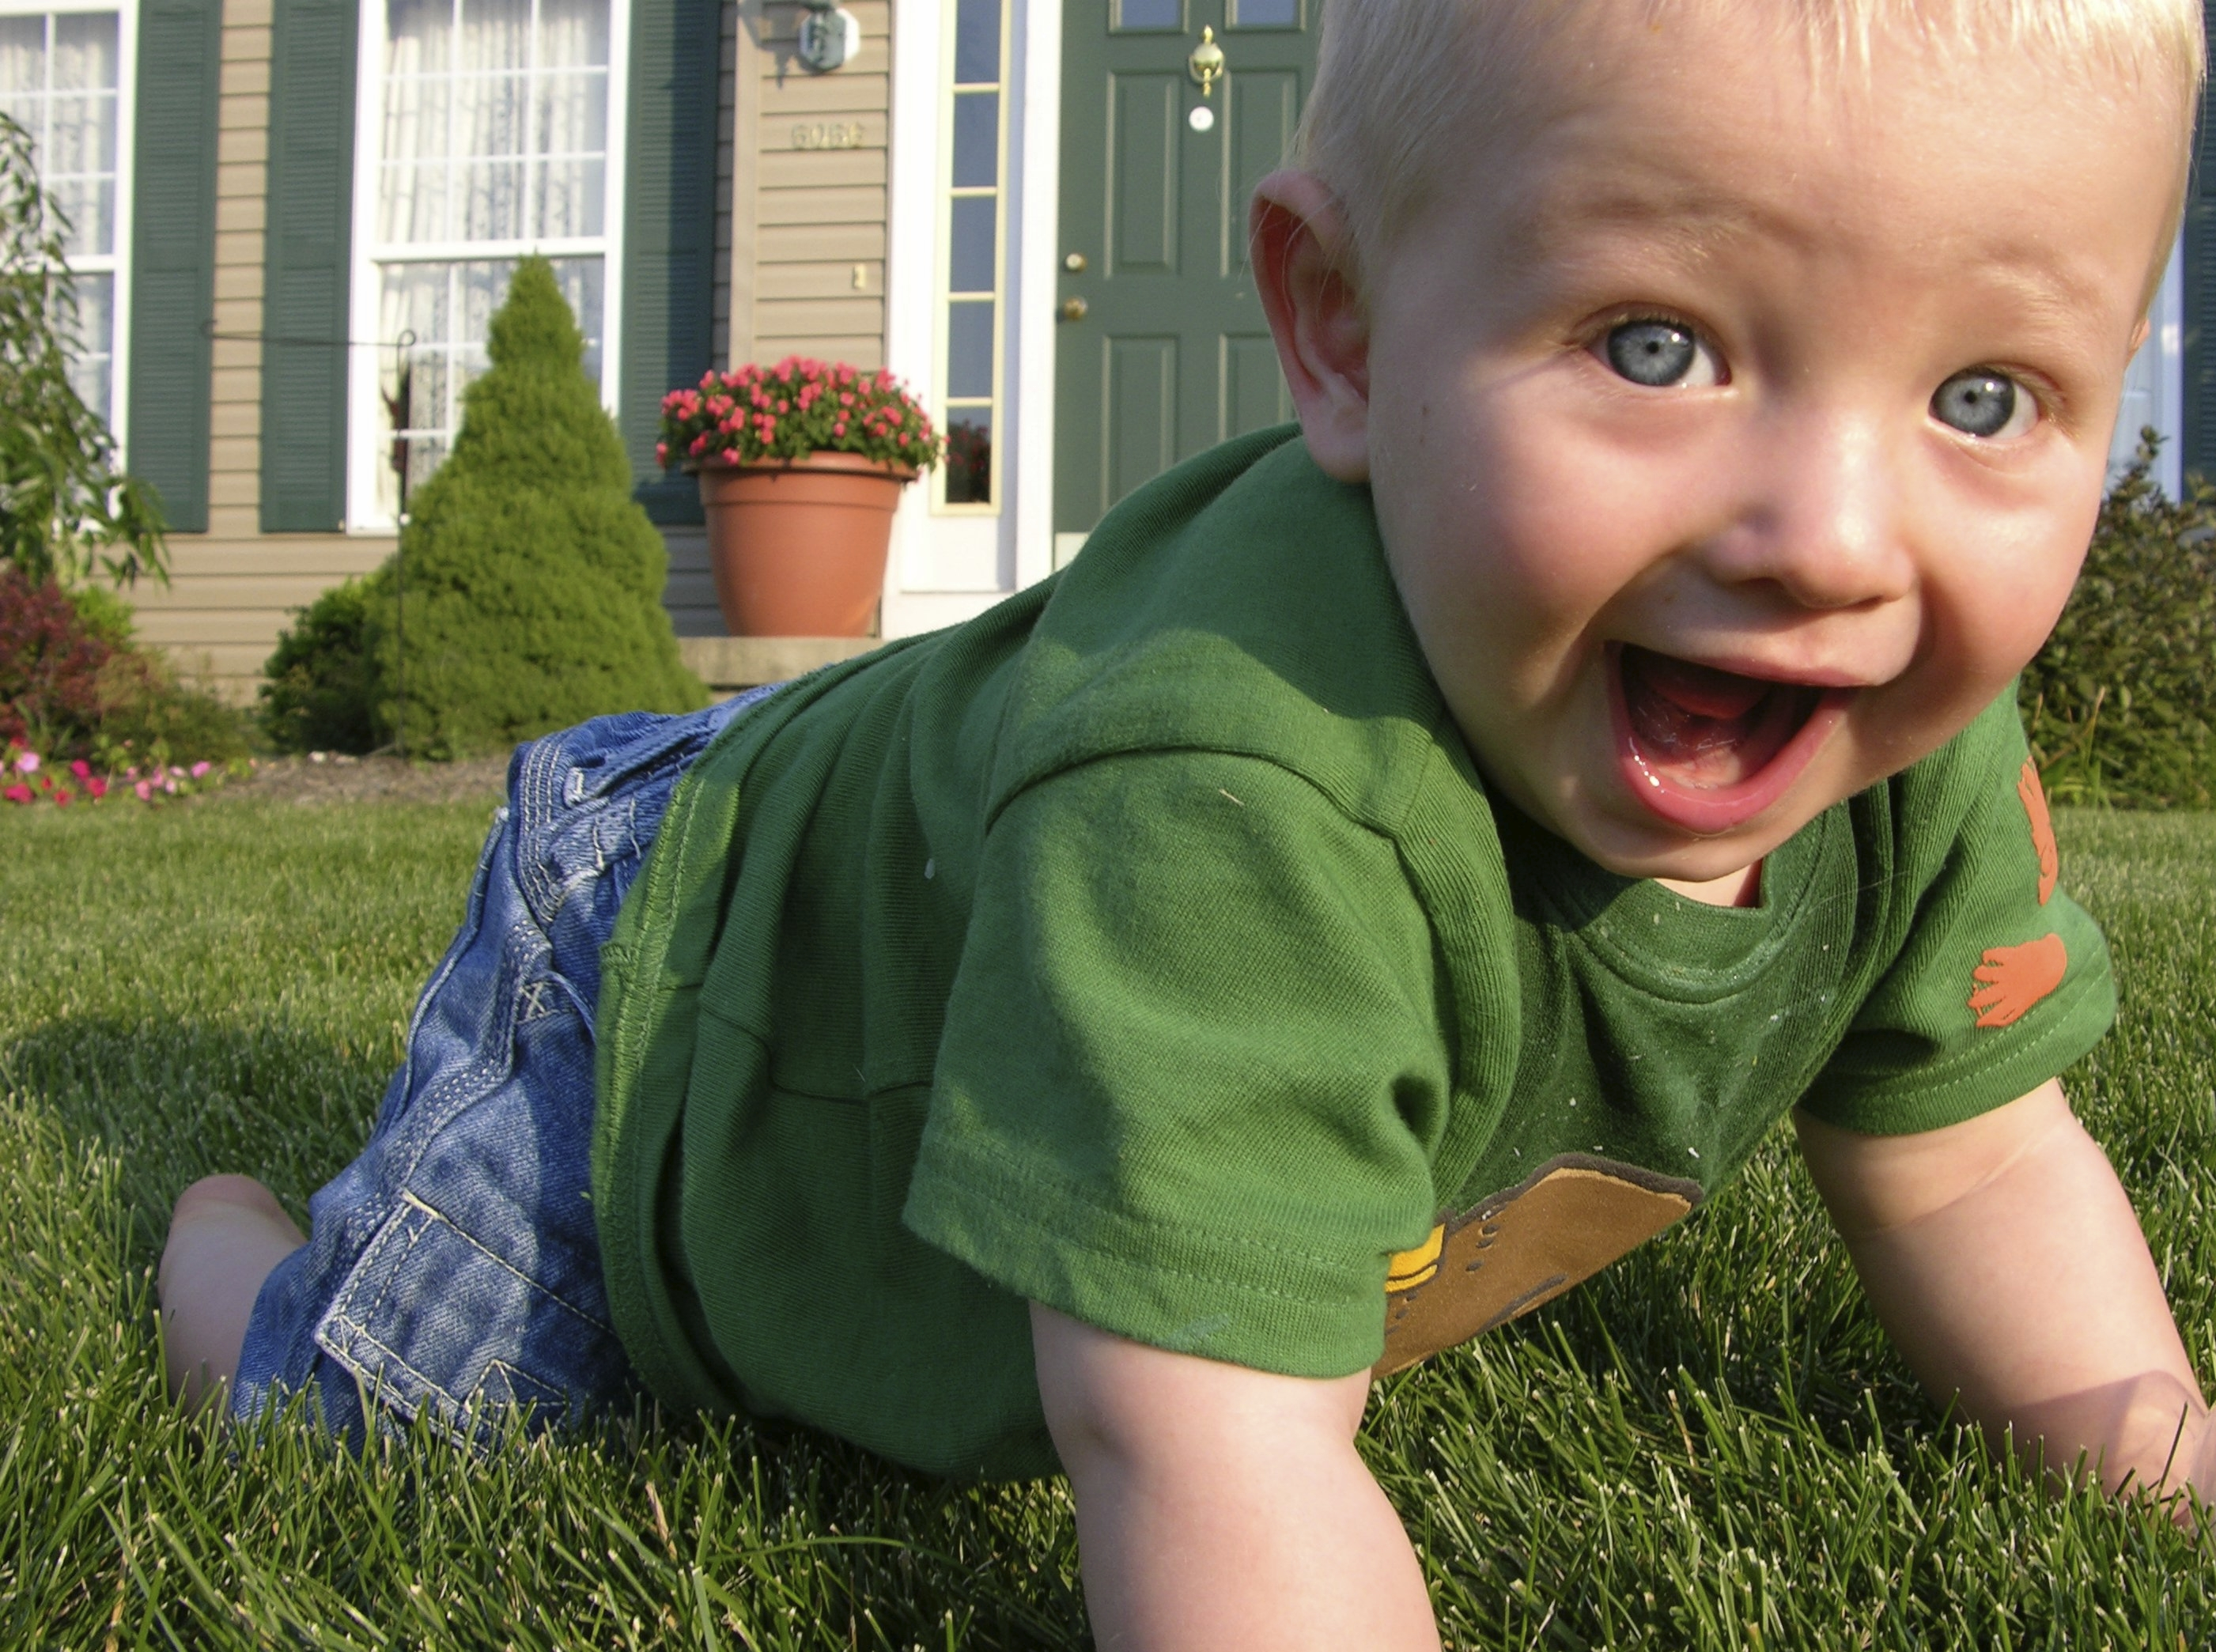 Use video slideshow software to create a highlight reel of your kids